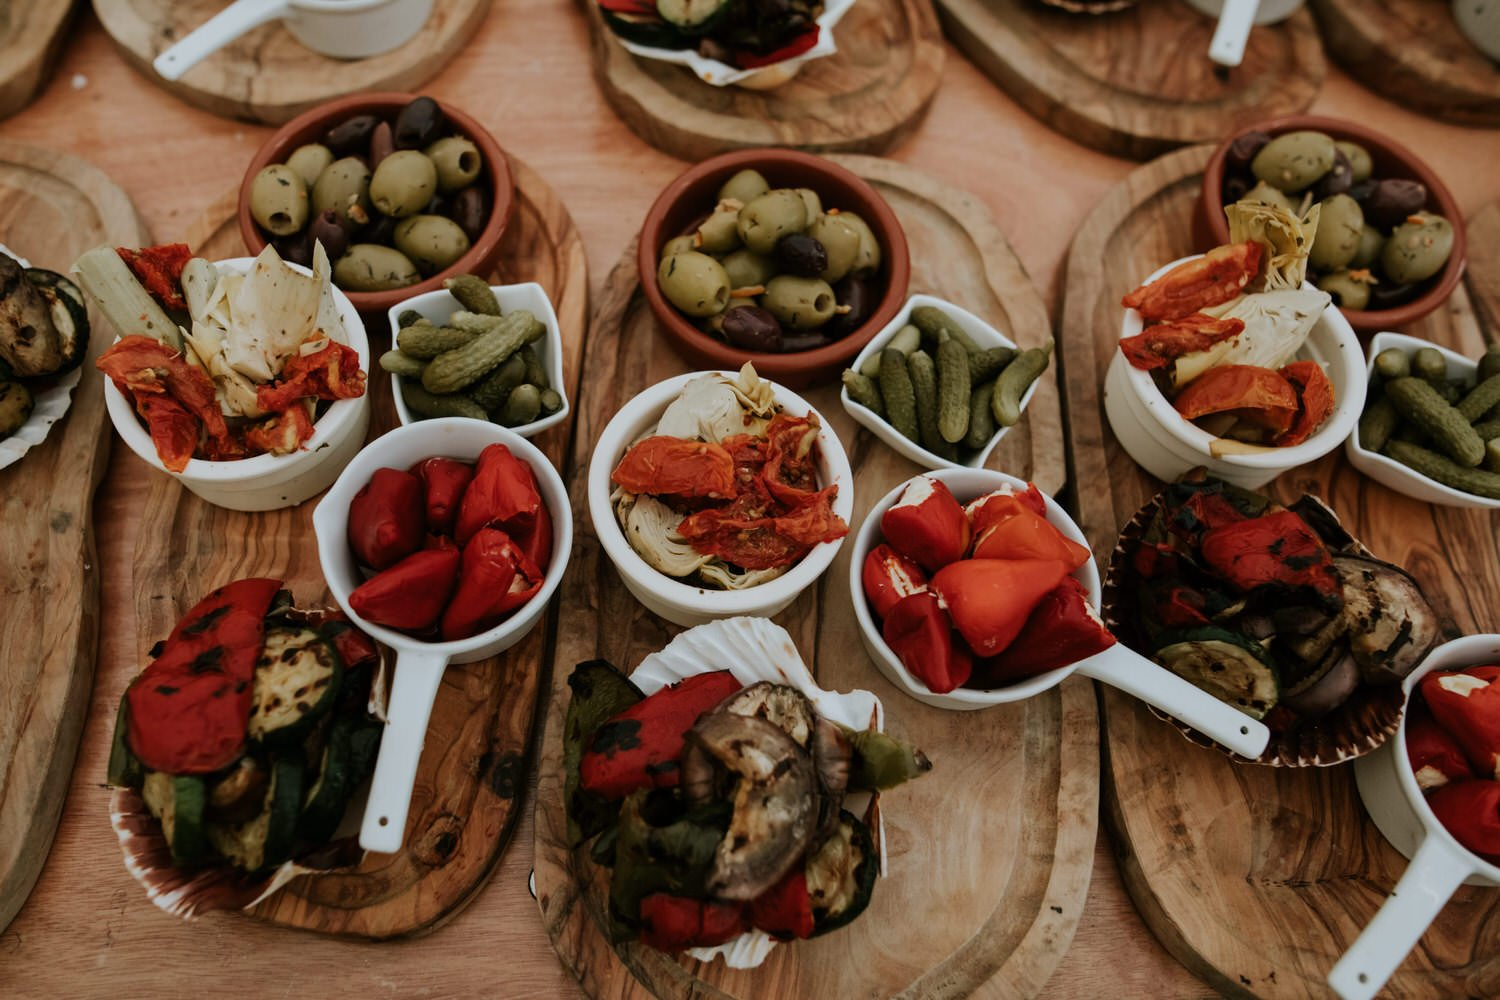 Canapés fresh on wooden table